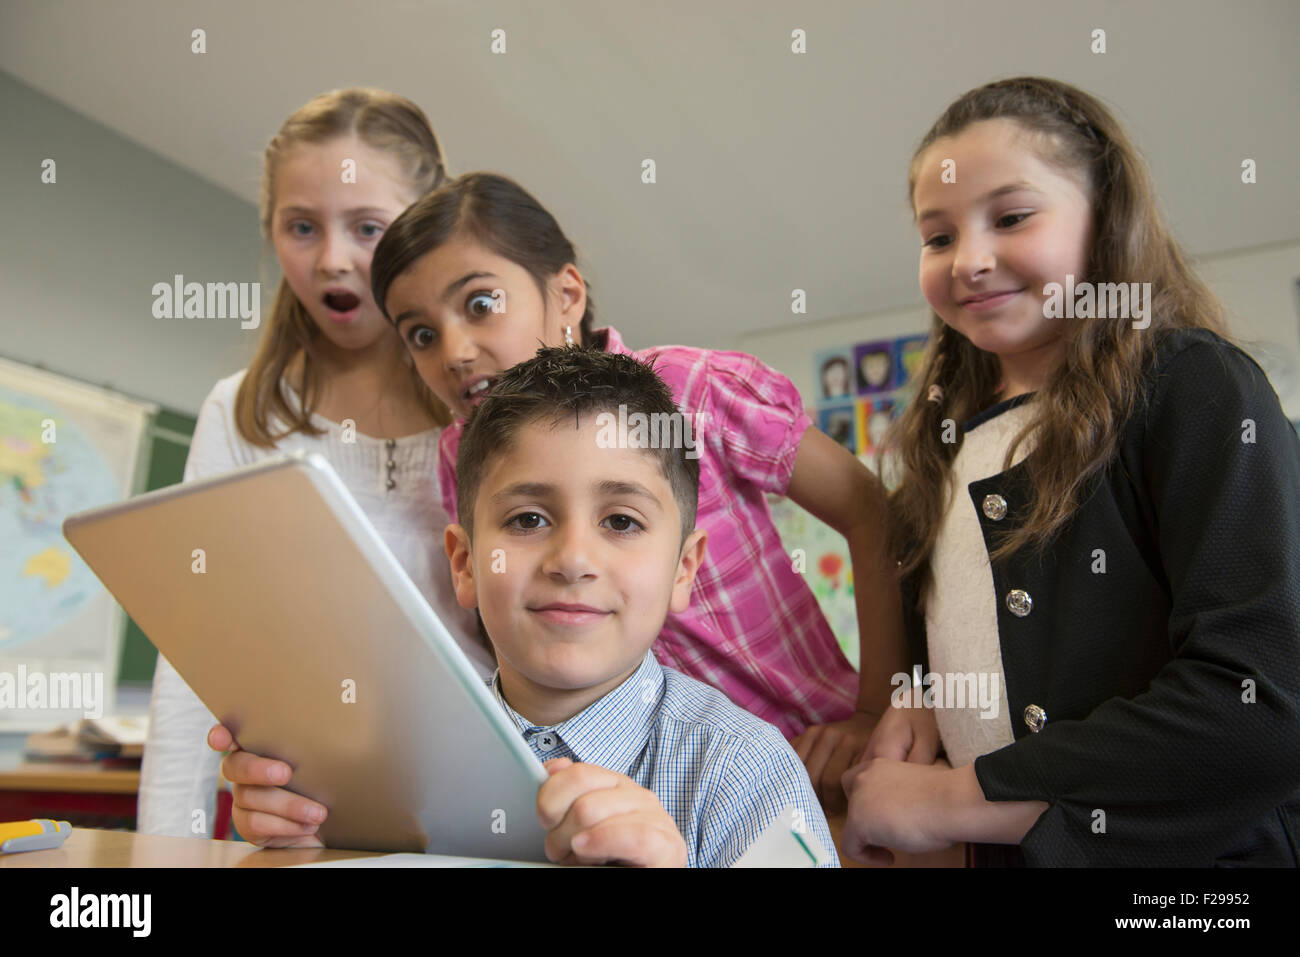 School children using a digital tablet in a classroom, Munich, Bavaria, Germany - Stock Image